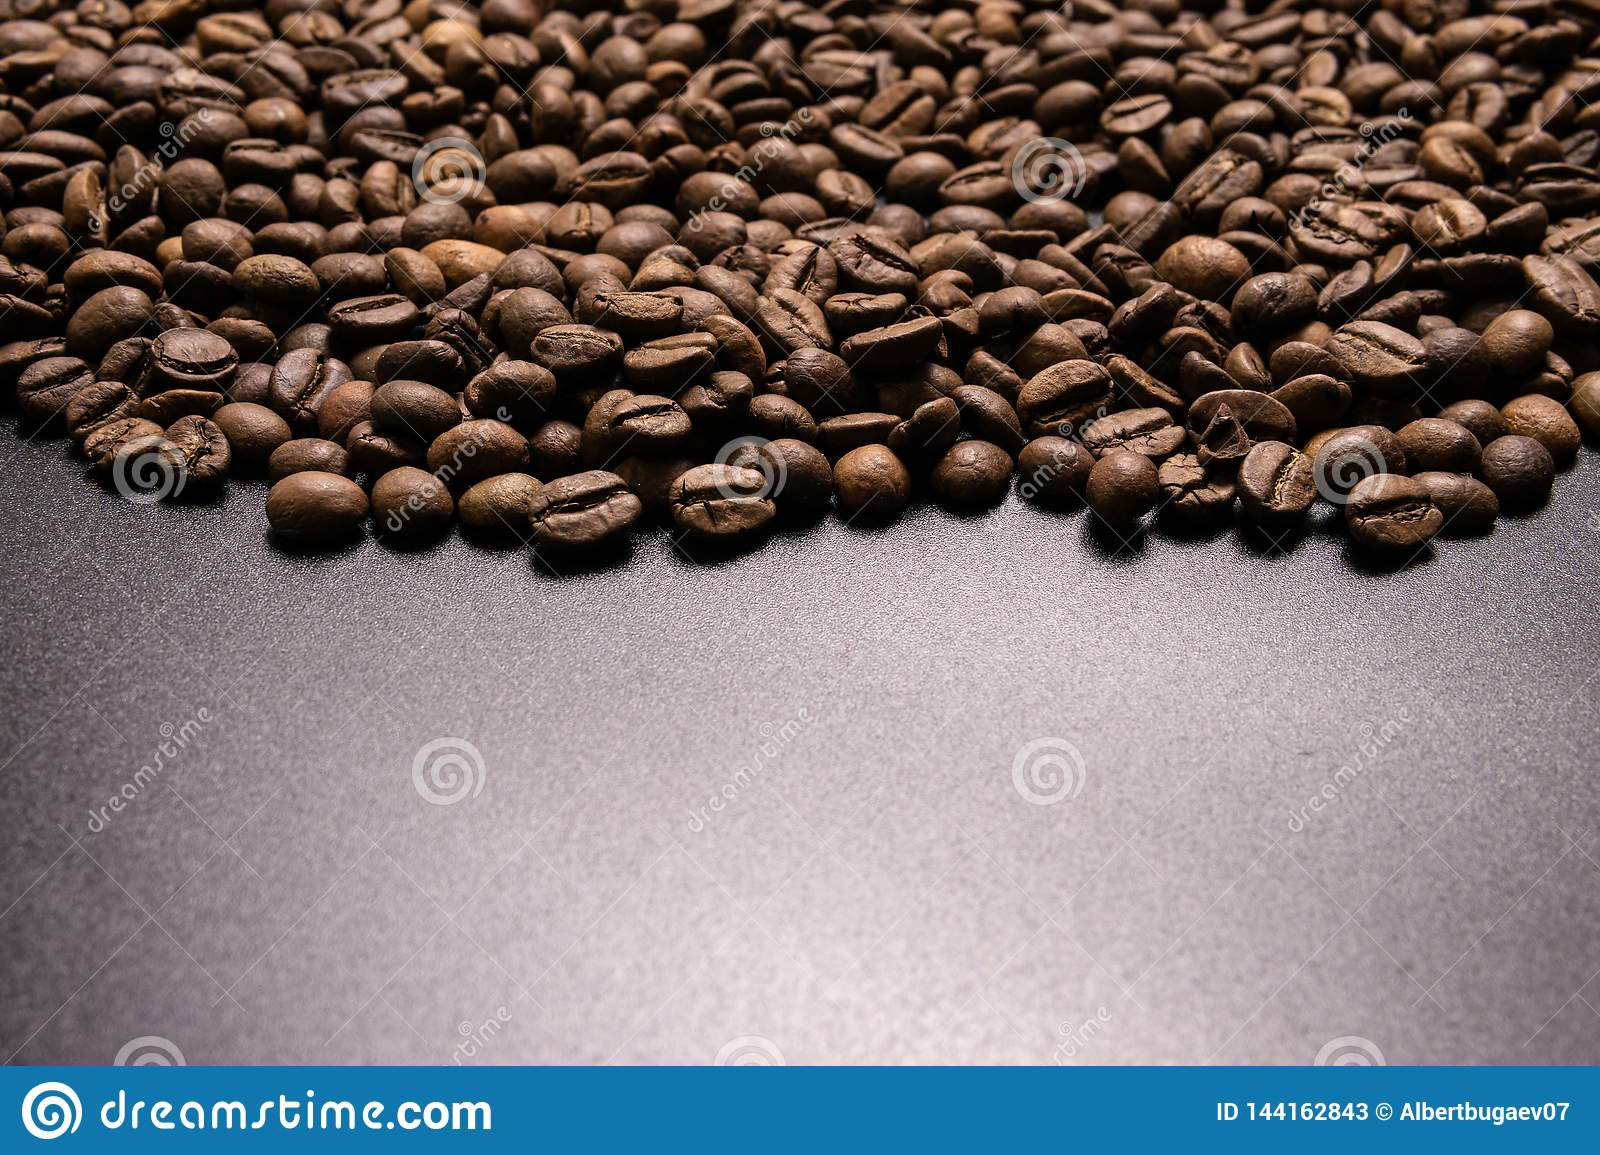 Roasted coffee beans in bulk on a black background. dark cofee roasted grain flavor aroma cafe, natural coffe shop background, top